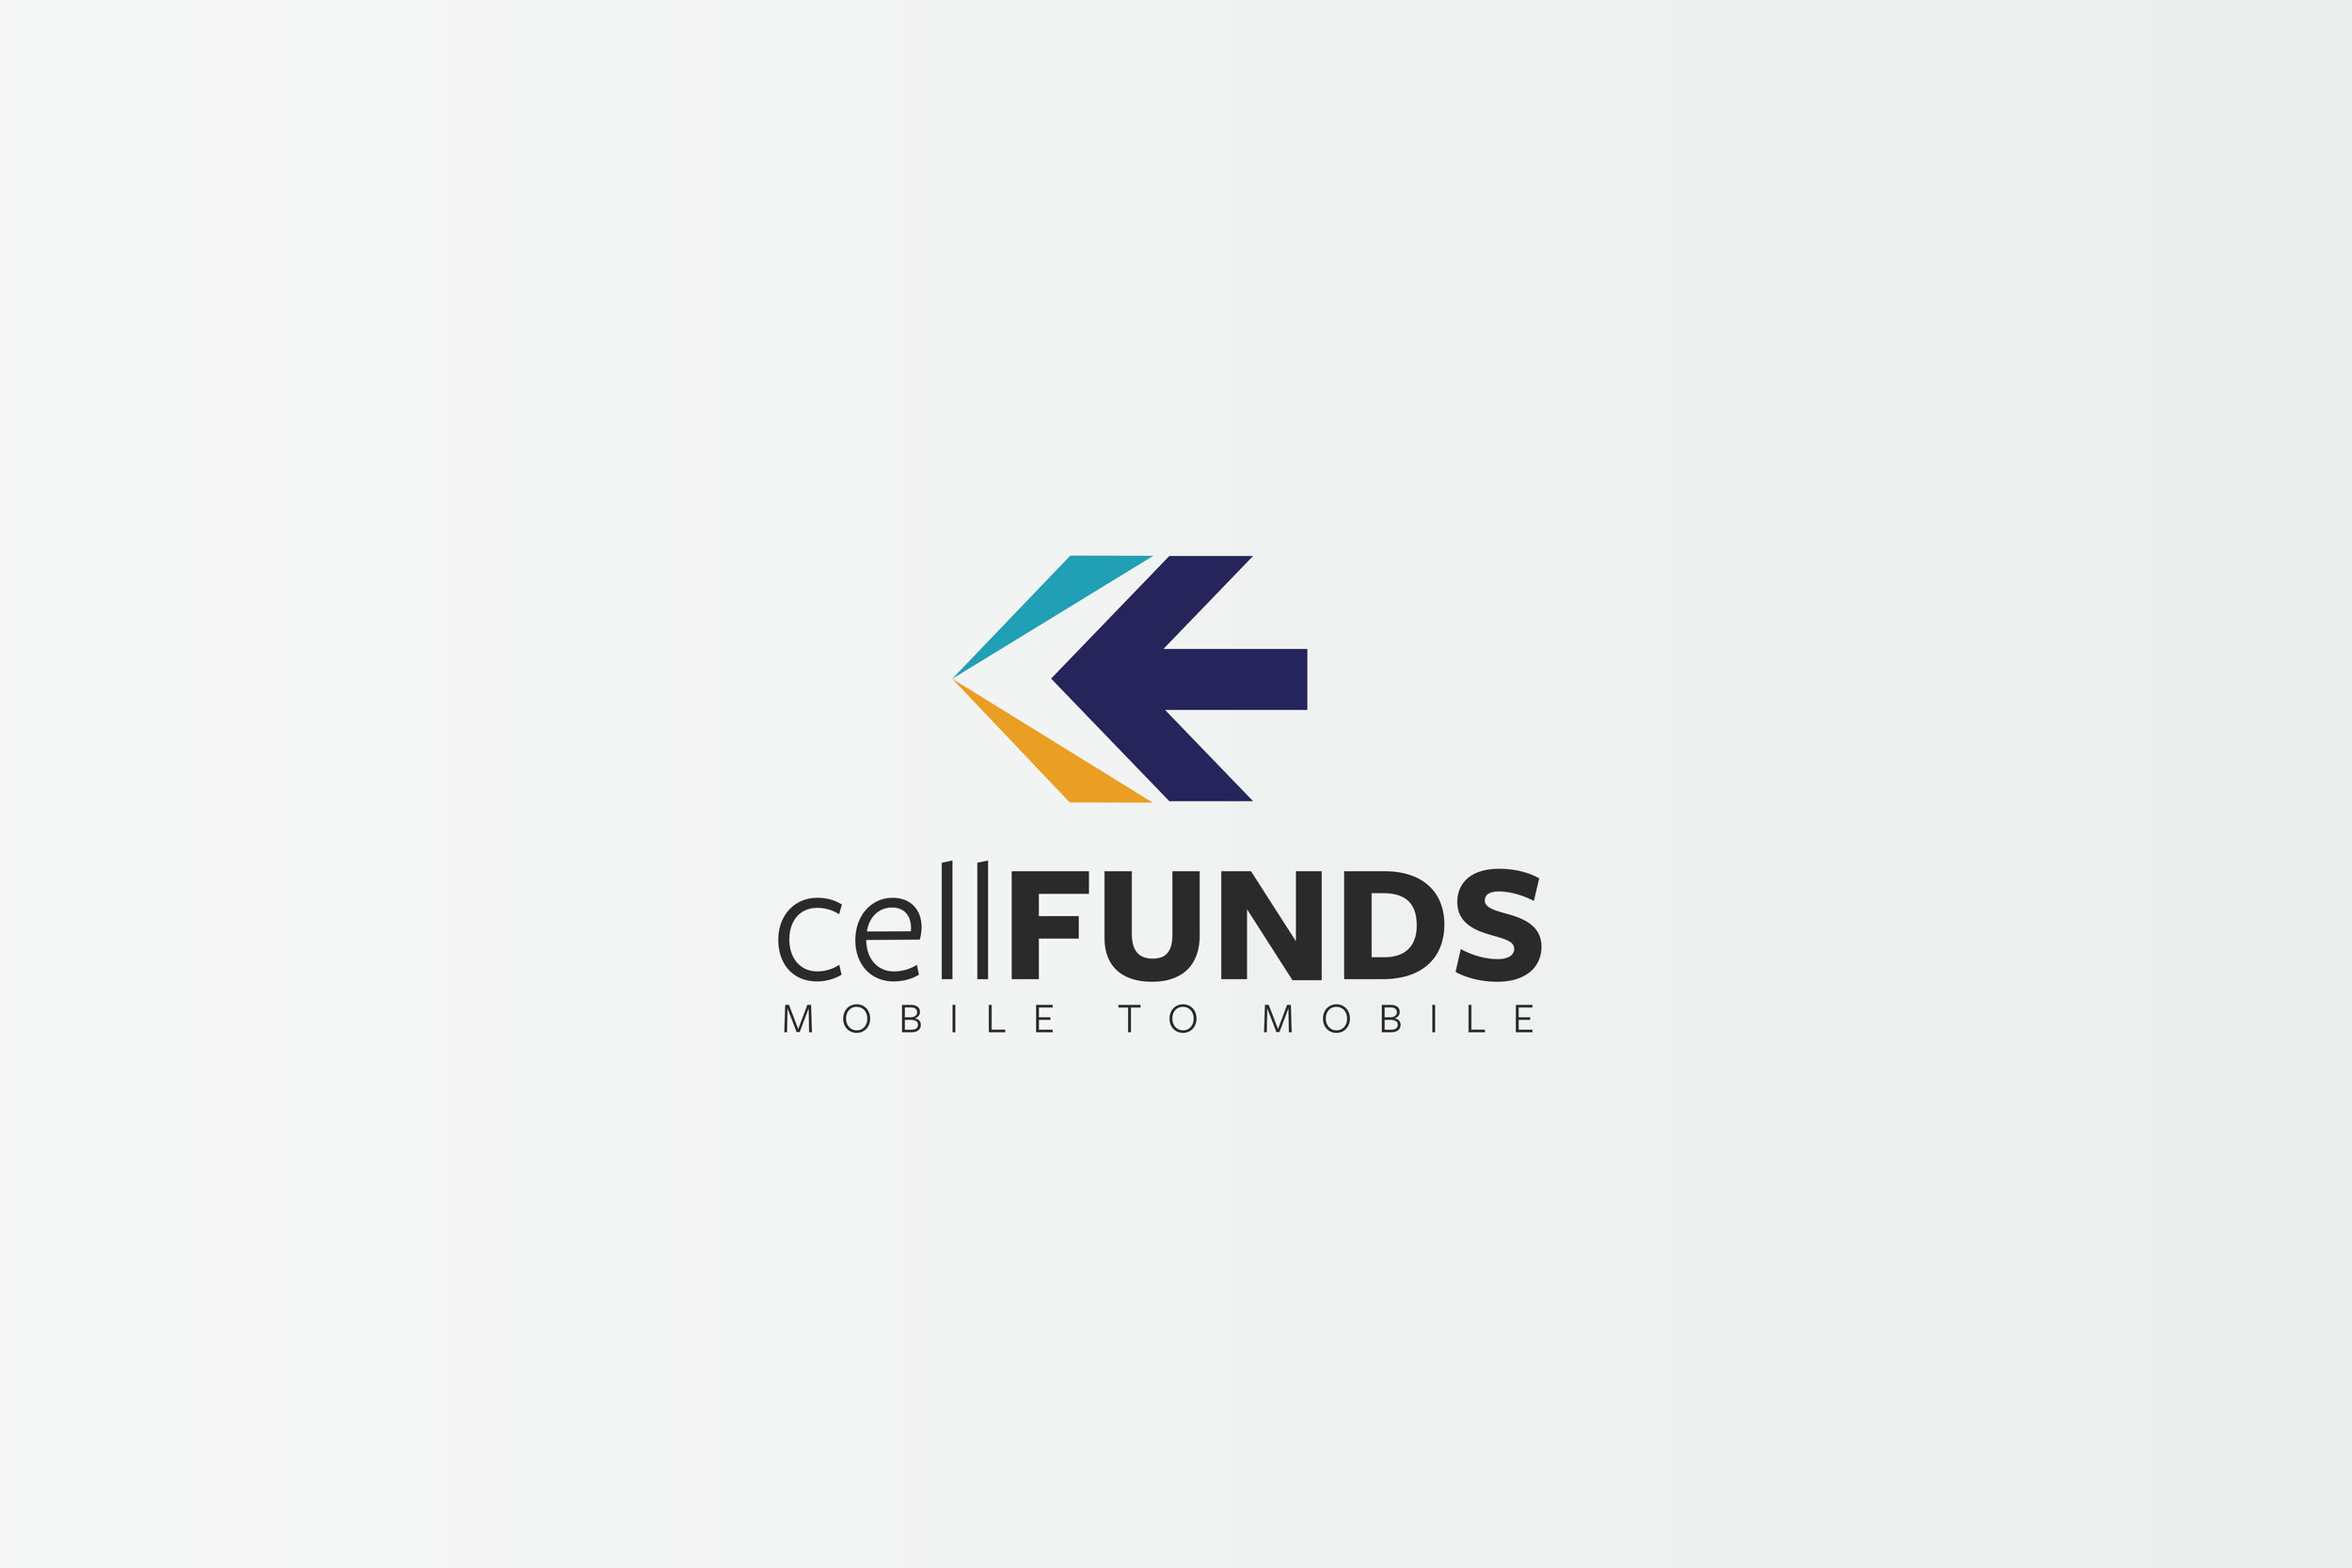 Cell Funds